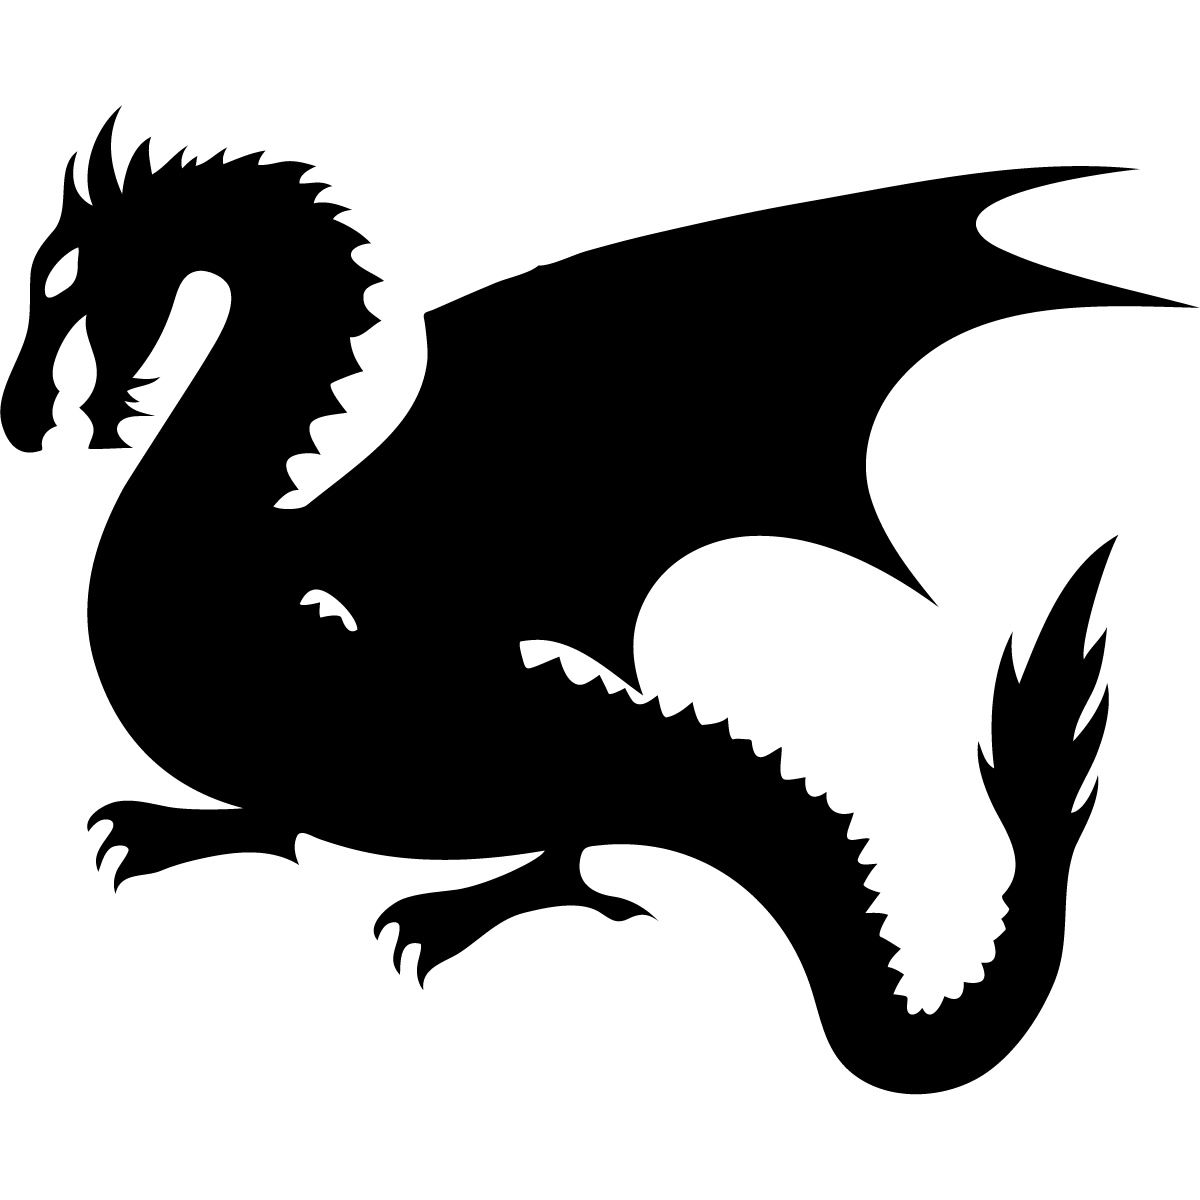 cute baby dragon clipart free clipart images image 6 crafty things rh pinterest co uk dragon clipart images dragon clipart image